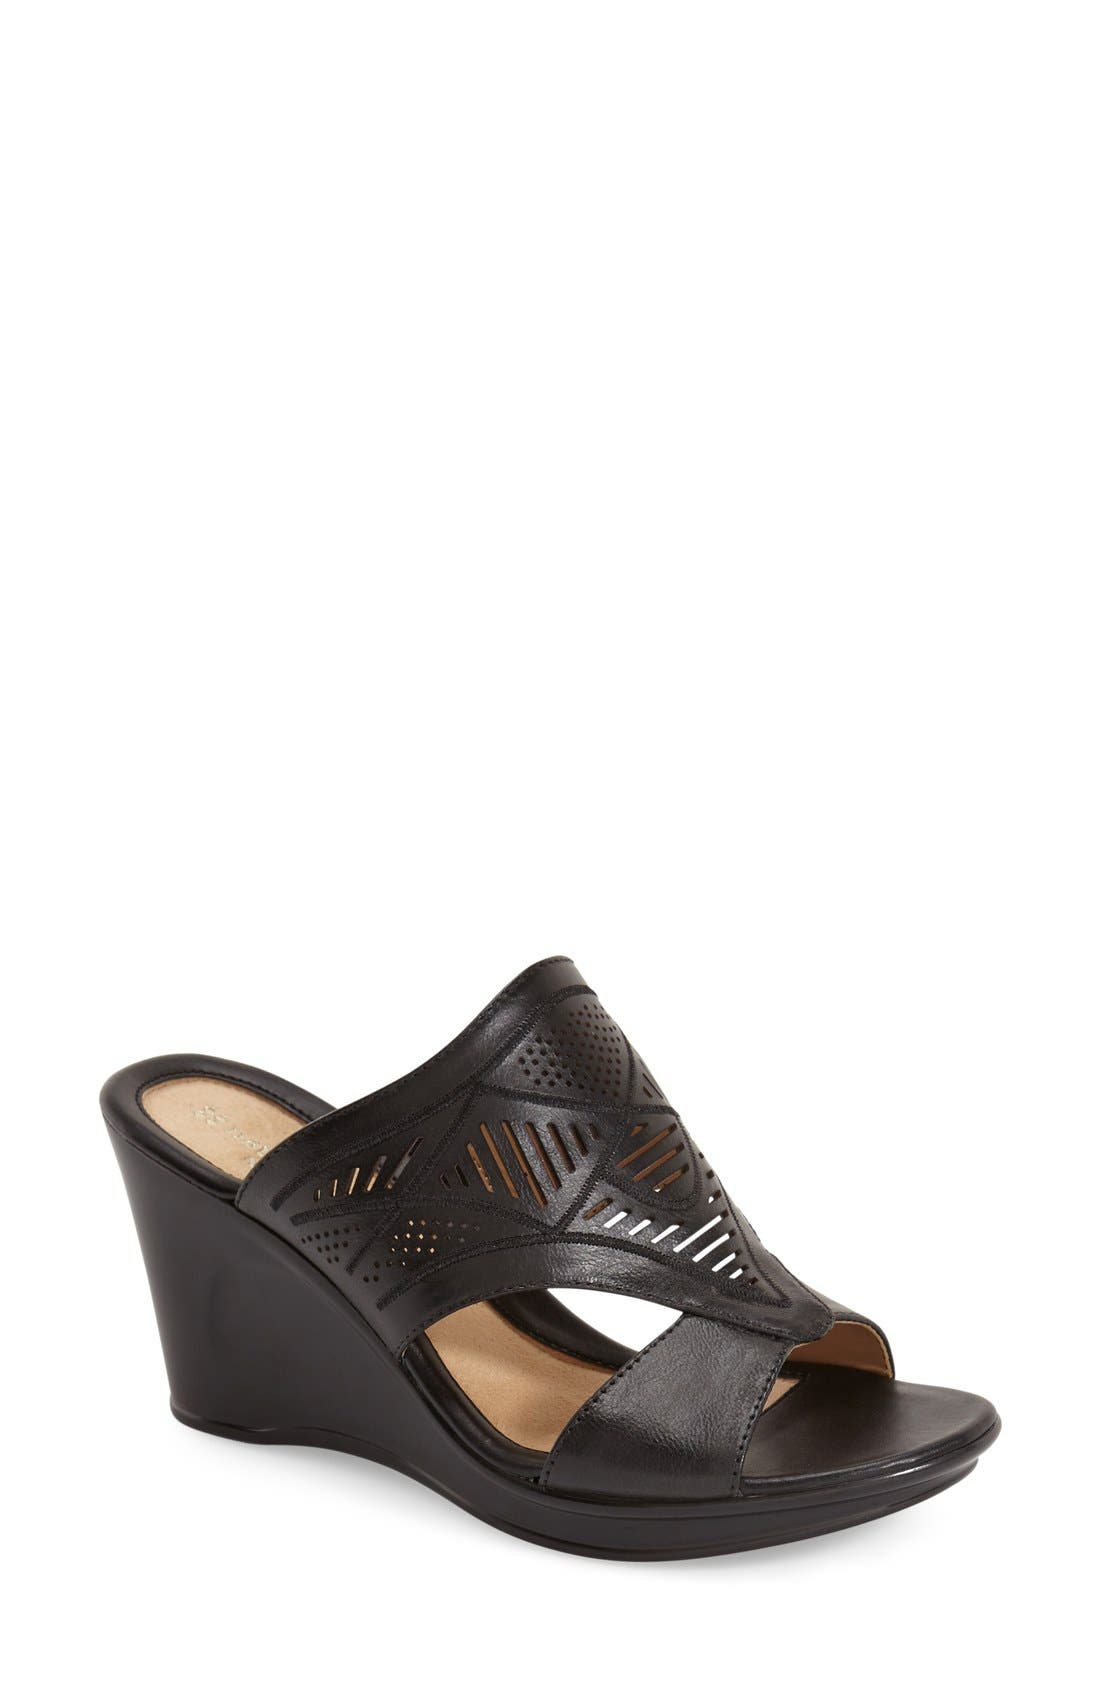 Main Image - Naturalizer 'Oshea' Wedge Sandal (Women)